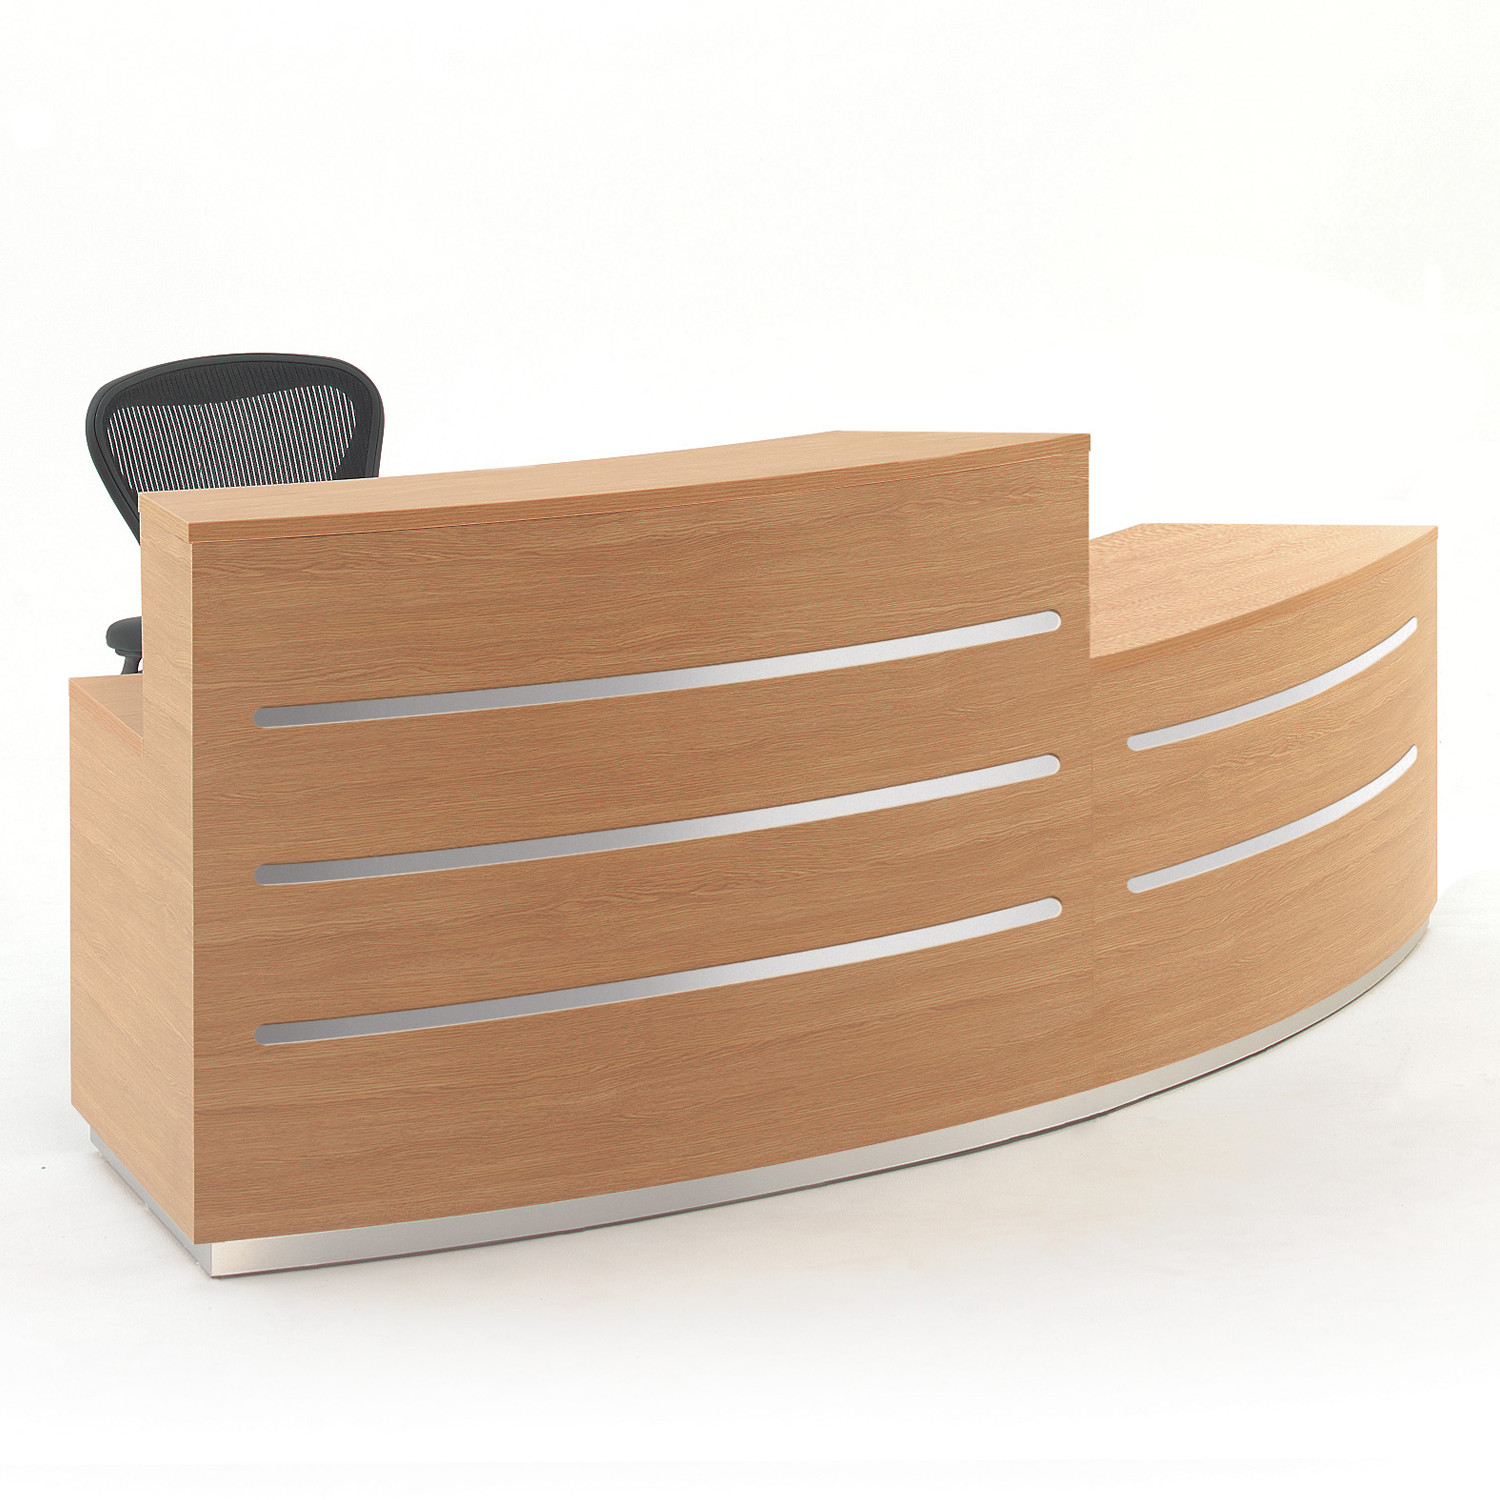 Bespoke Reception Desk - Evolution Eclypse